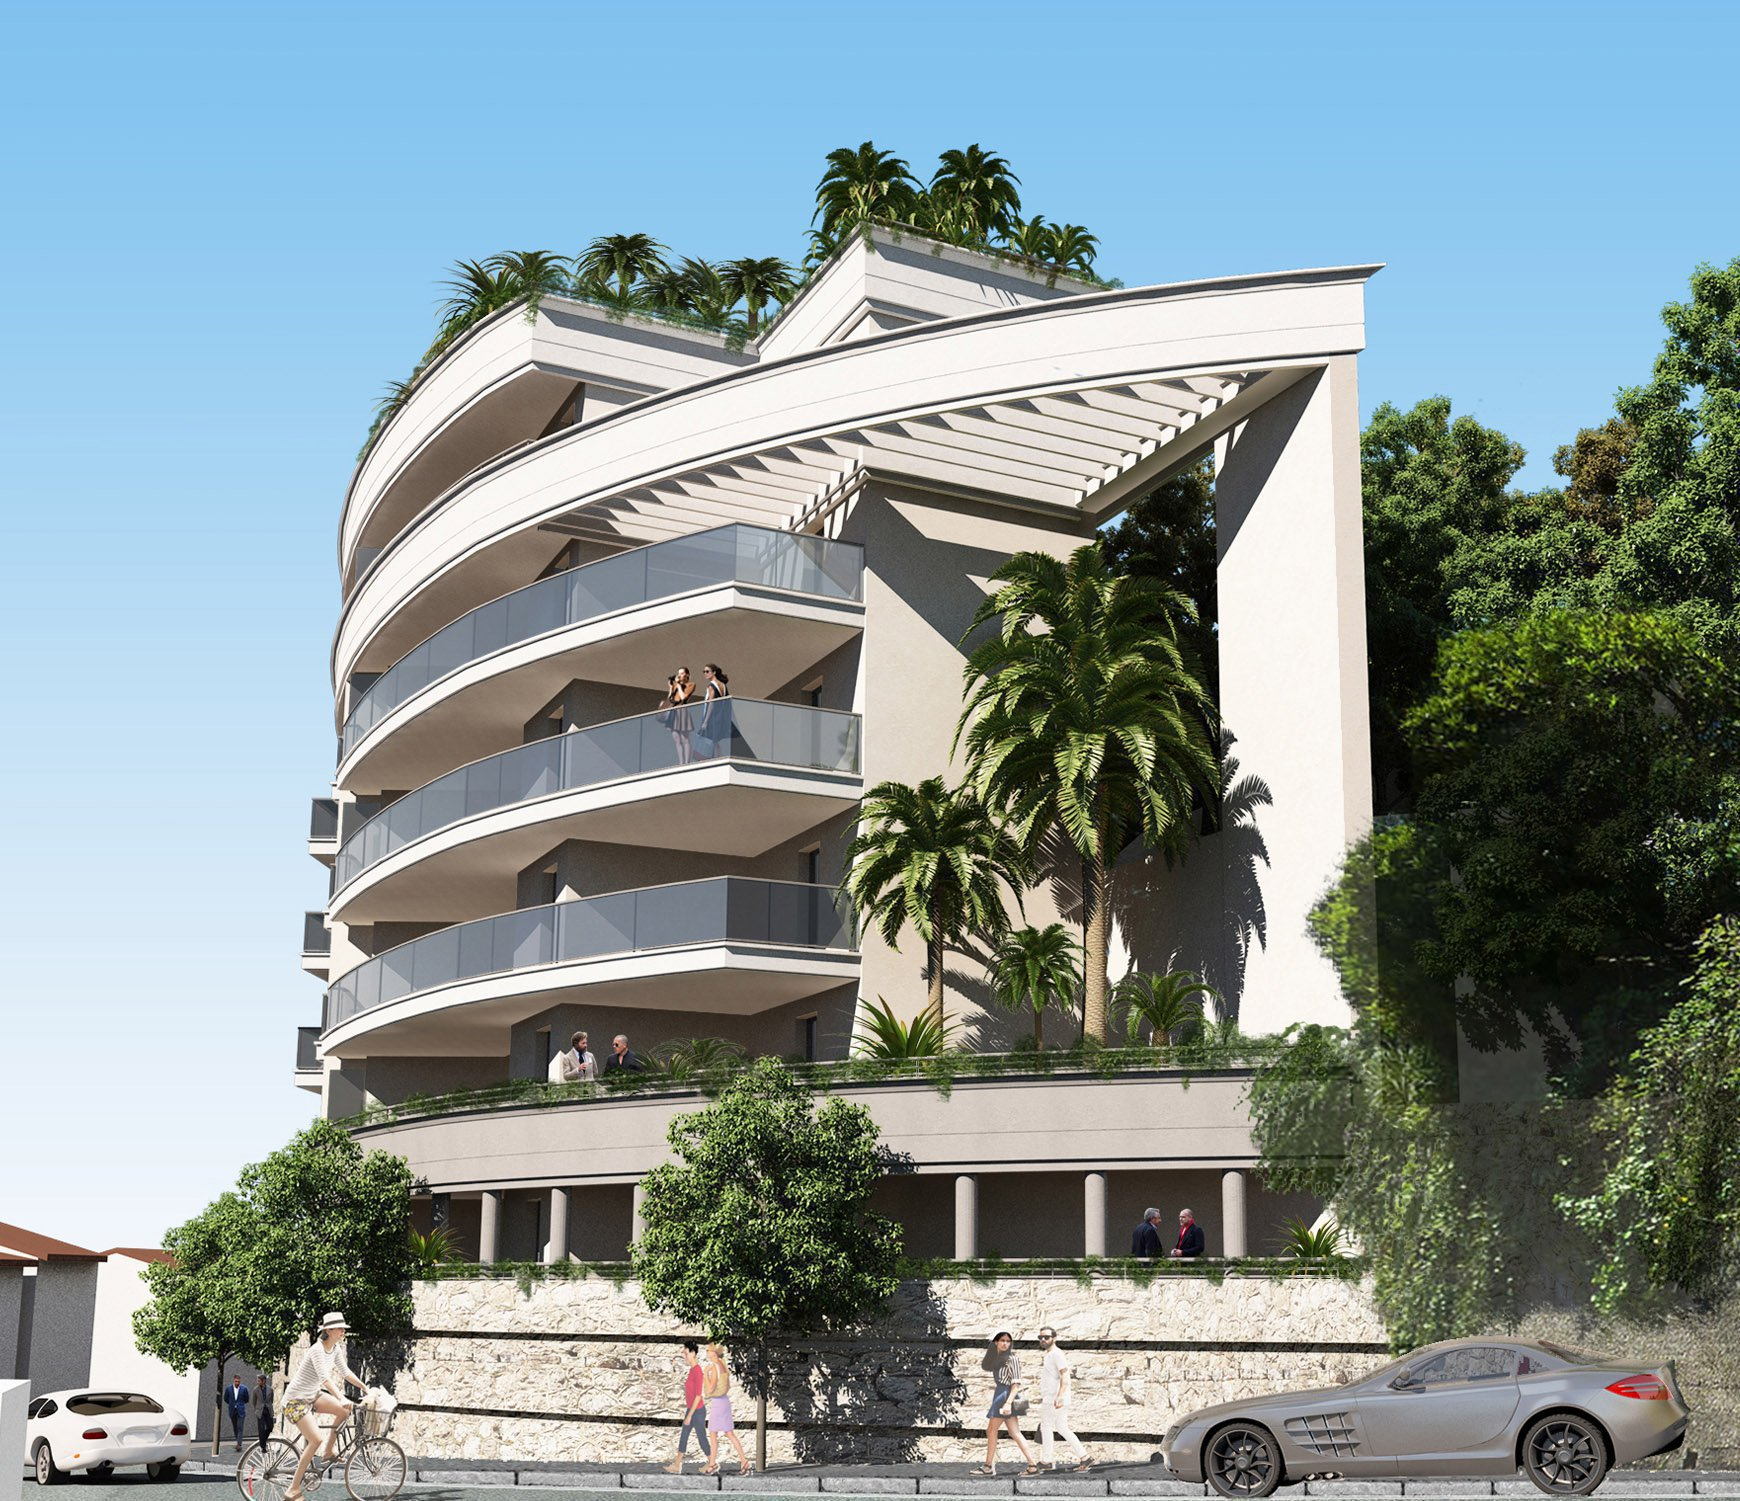 BEAUSOLEIL - Frecnh Riviera - 3 Bed apartment with sea view and large terrace